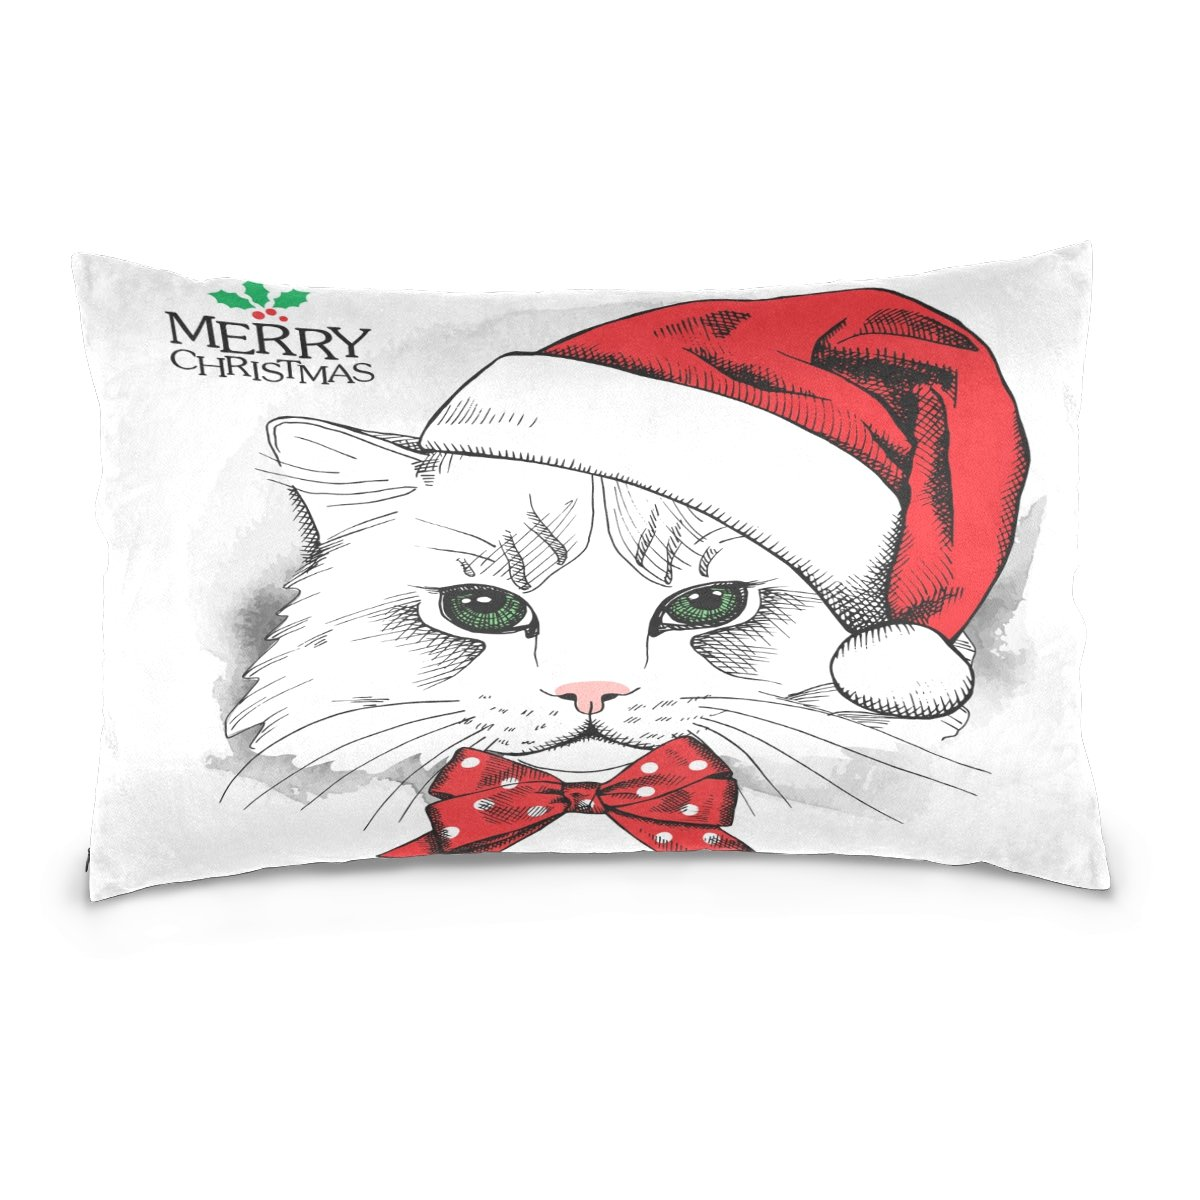 Pillow Covers Pillow Protectors Bed Bug Dust Mite Resistant Standard Pillow Cases Cotton Sateen Allergy Proof Soft Quality Covers with Christmas Cute Animal Kitten for Bedding